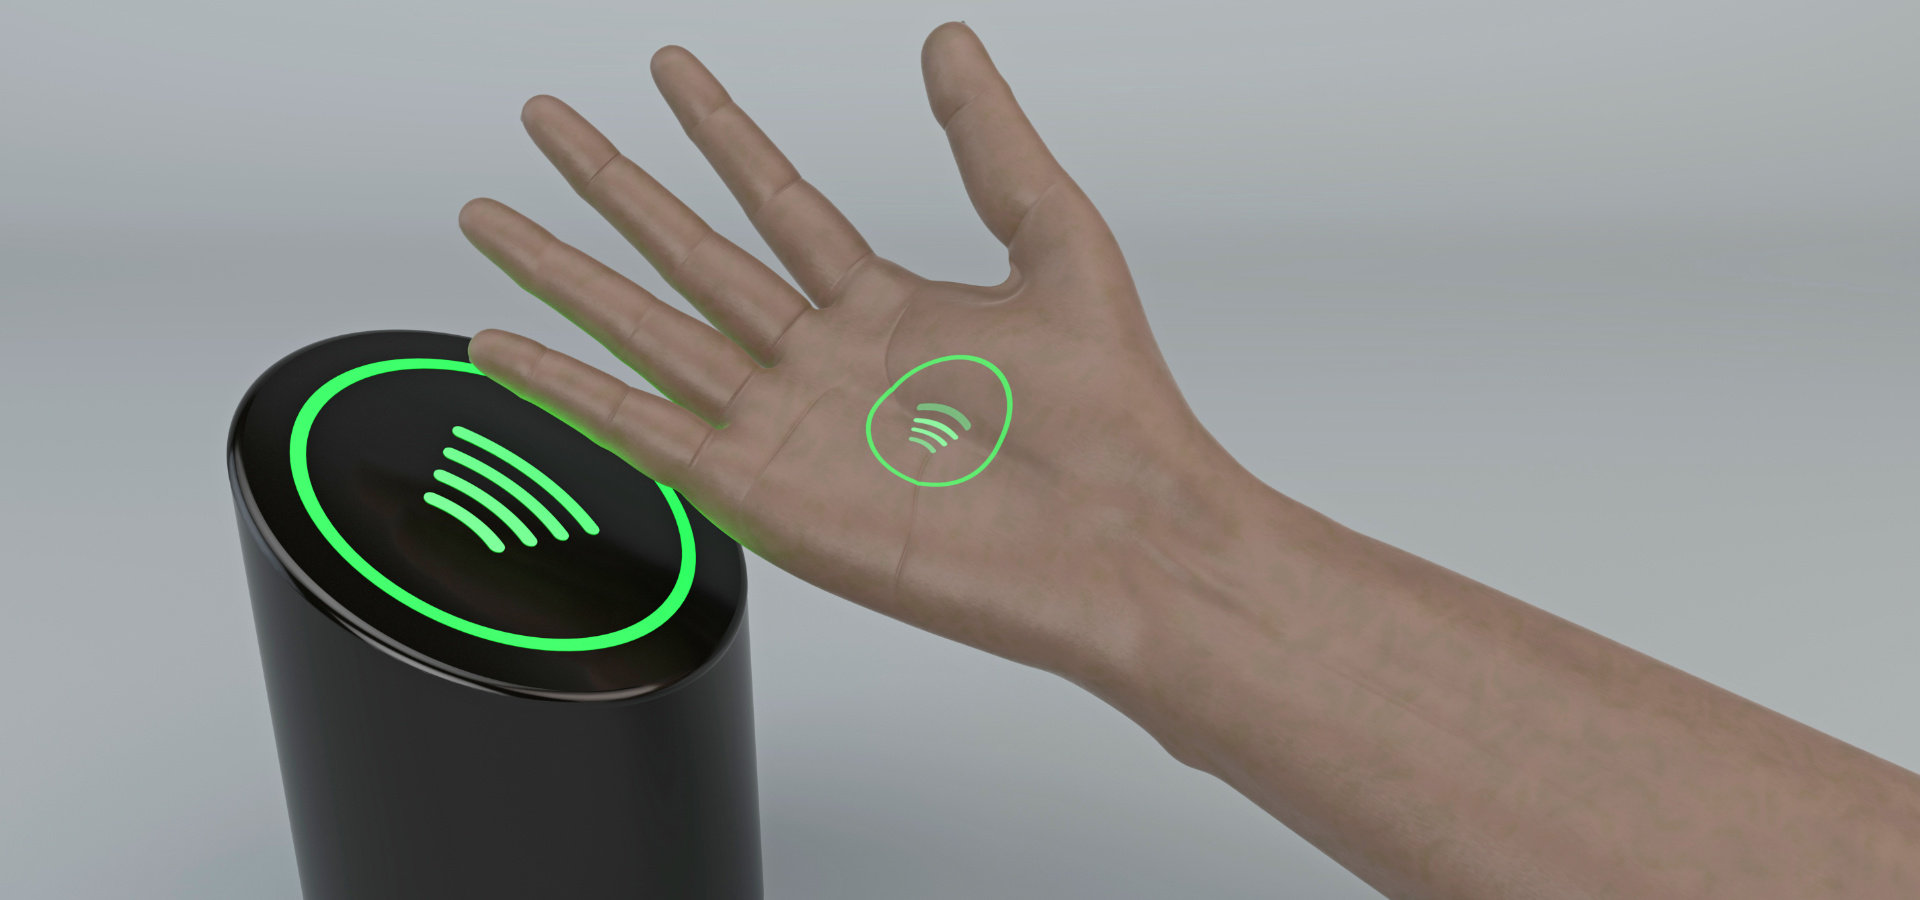 NFC implant in the hand in front of black NFC scanner